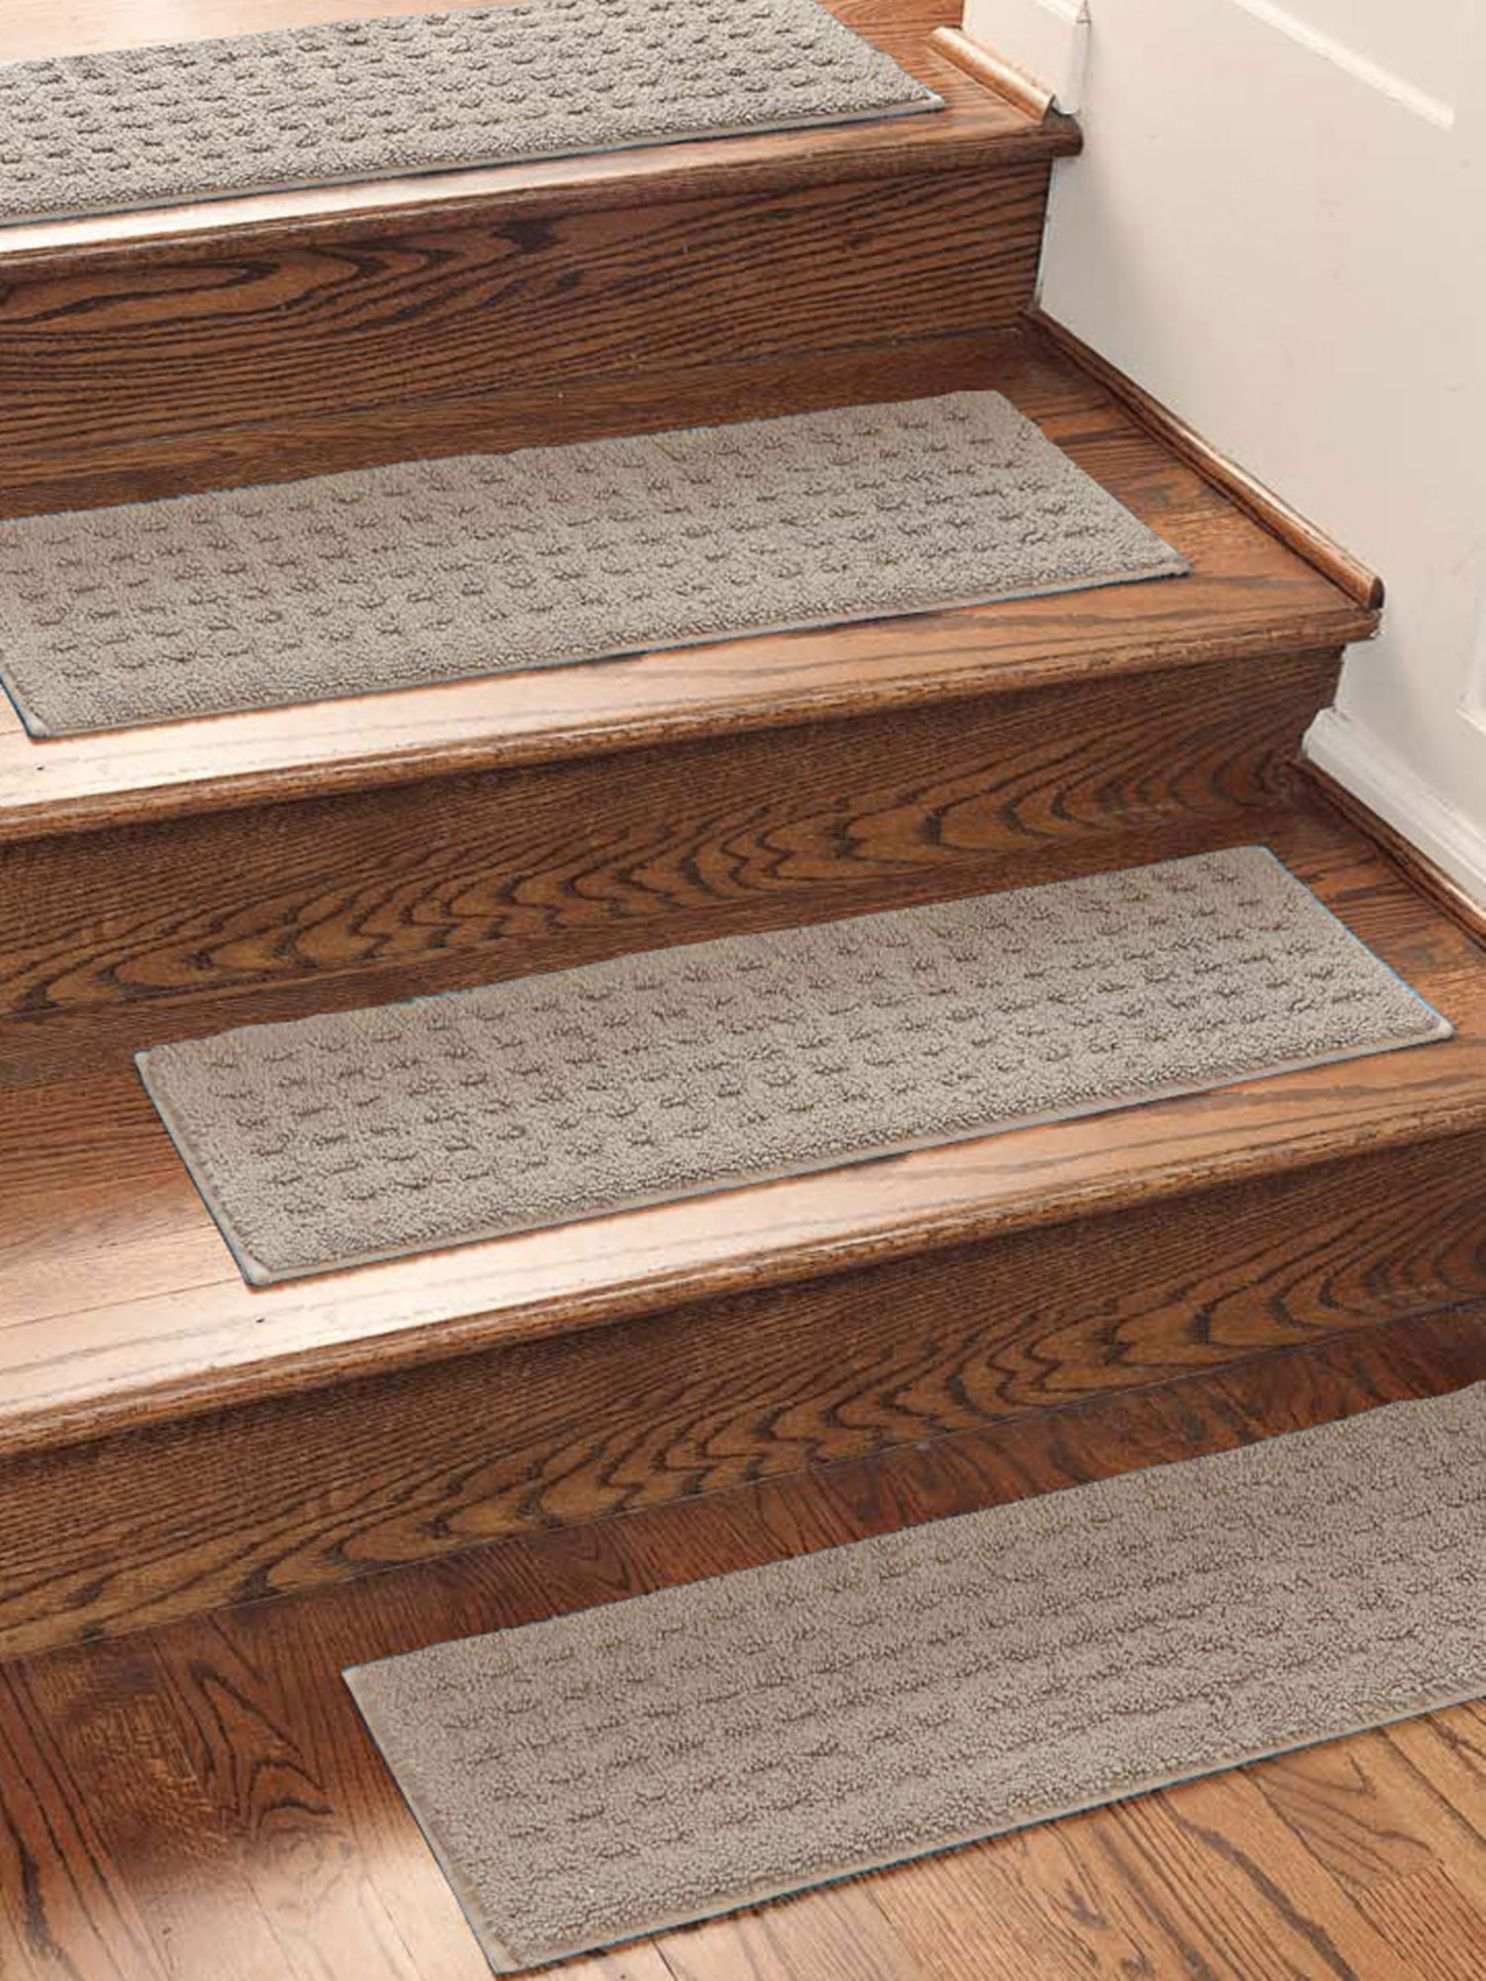 Awesome Indoor Stair Treads Non Slip Images - Amazing Design Ideas ...